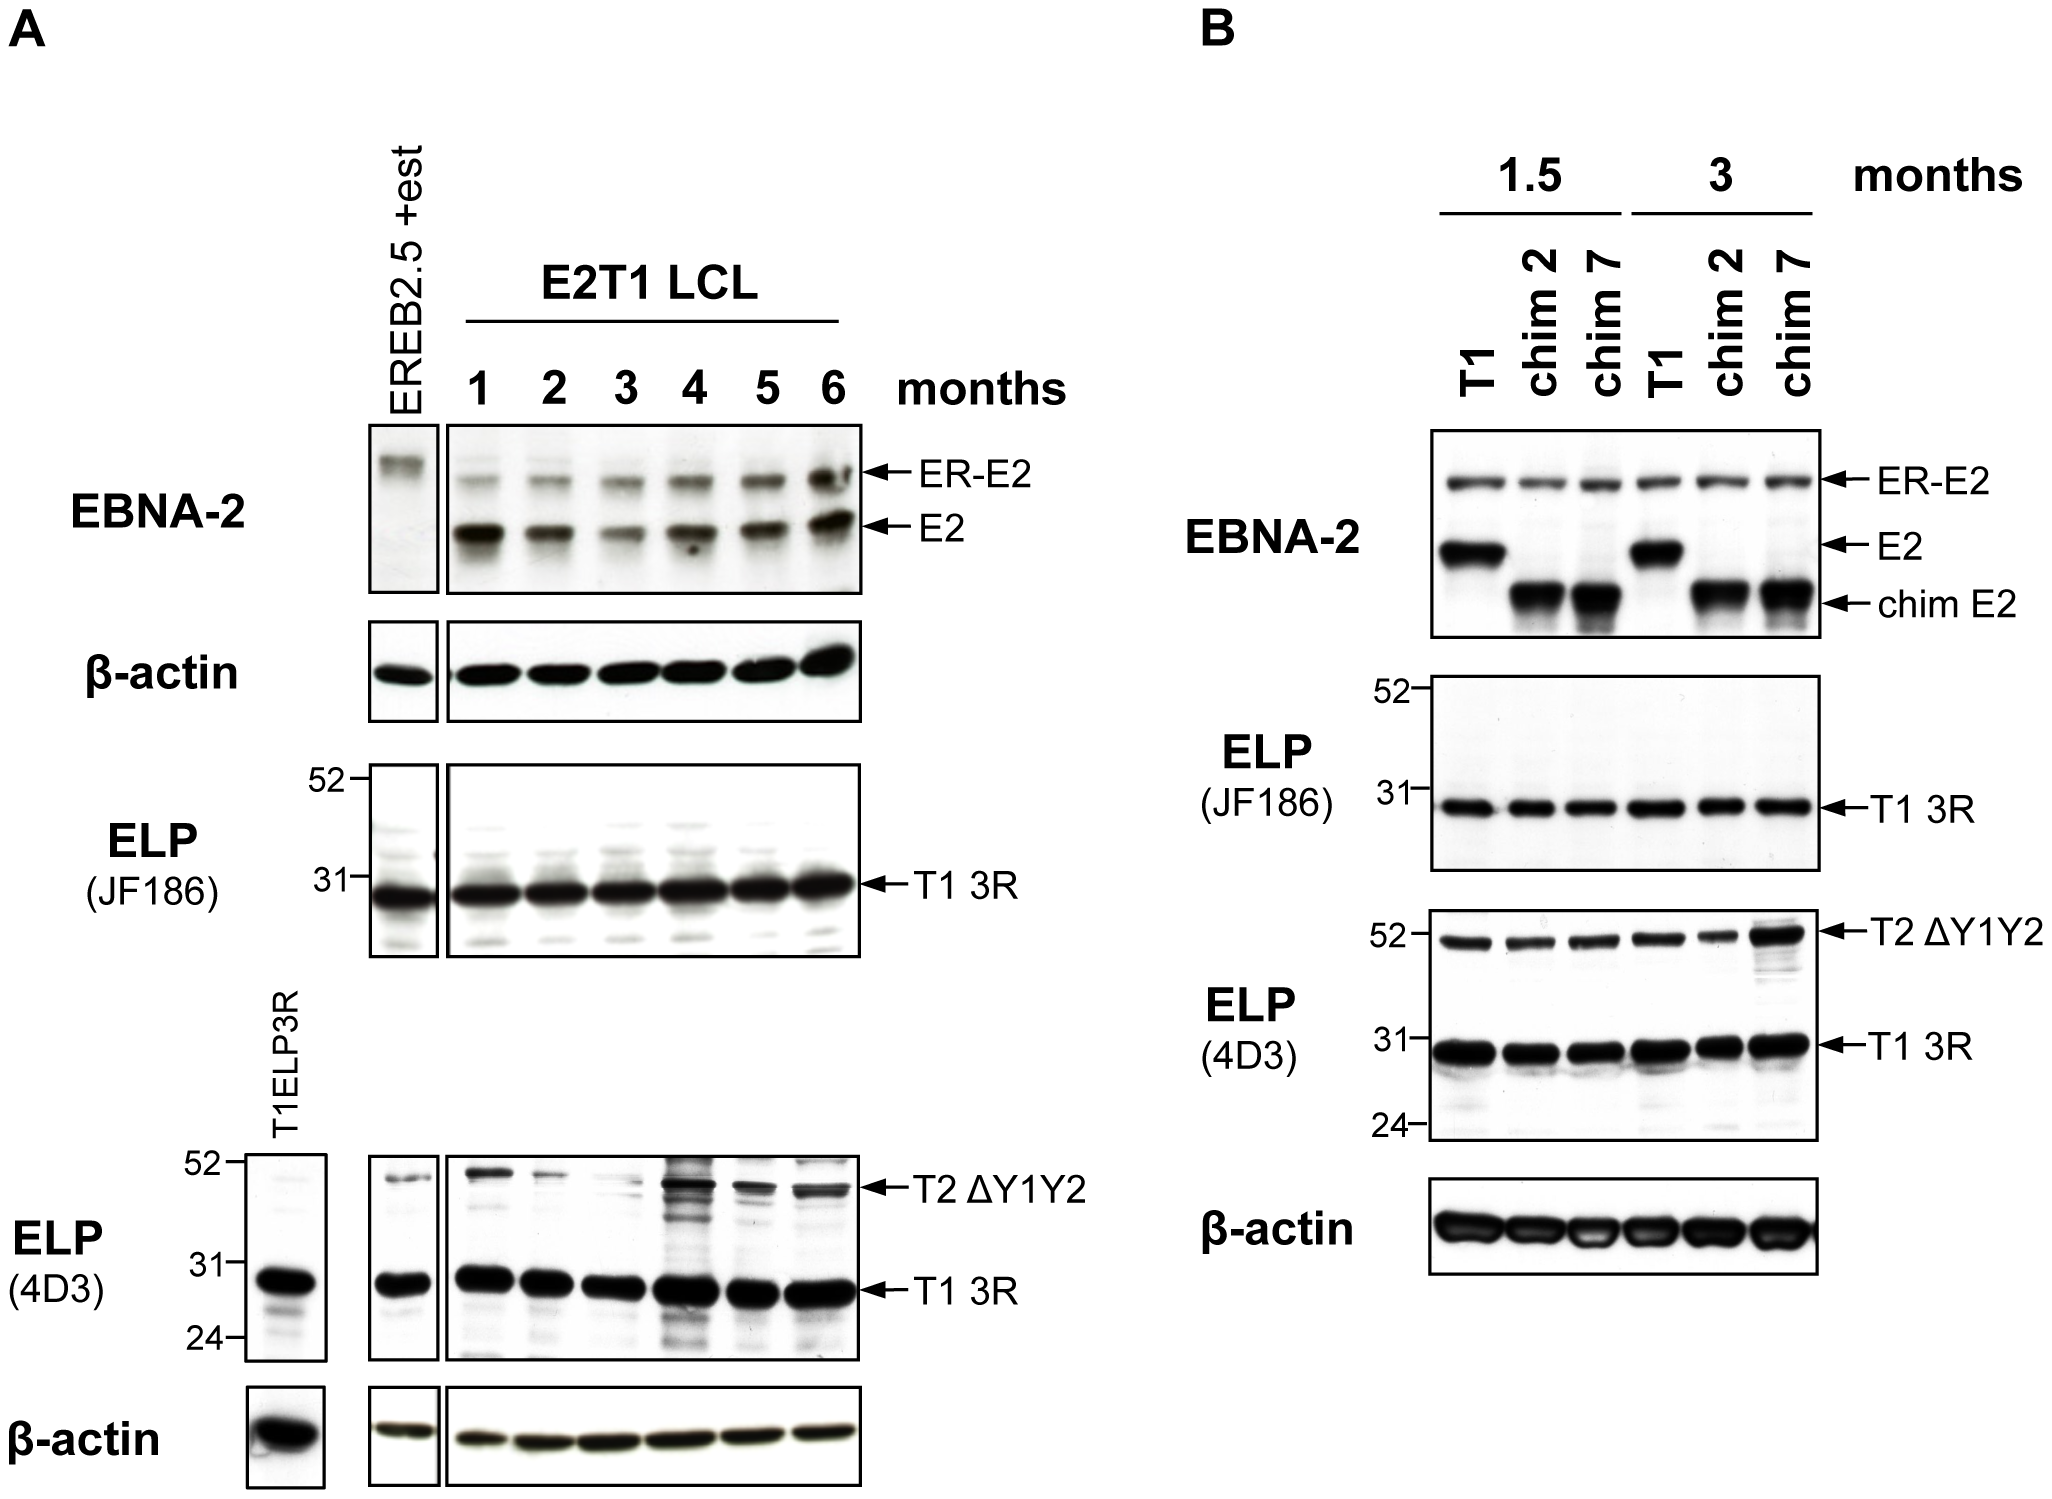 Characterization of oestrogen-independent LCLs established from EREB2.5 cells expressing chimaeras 2 and 7.